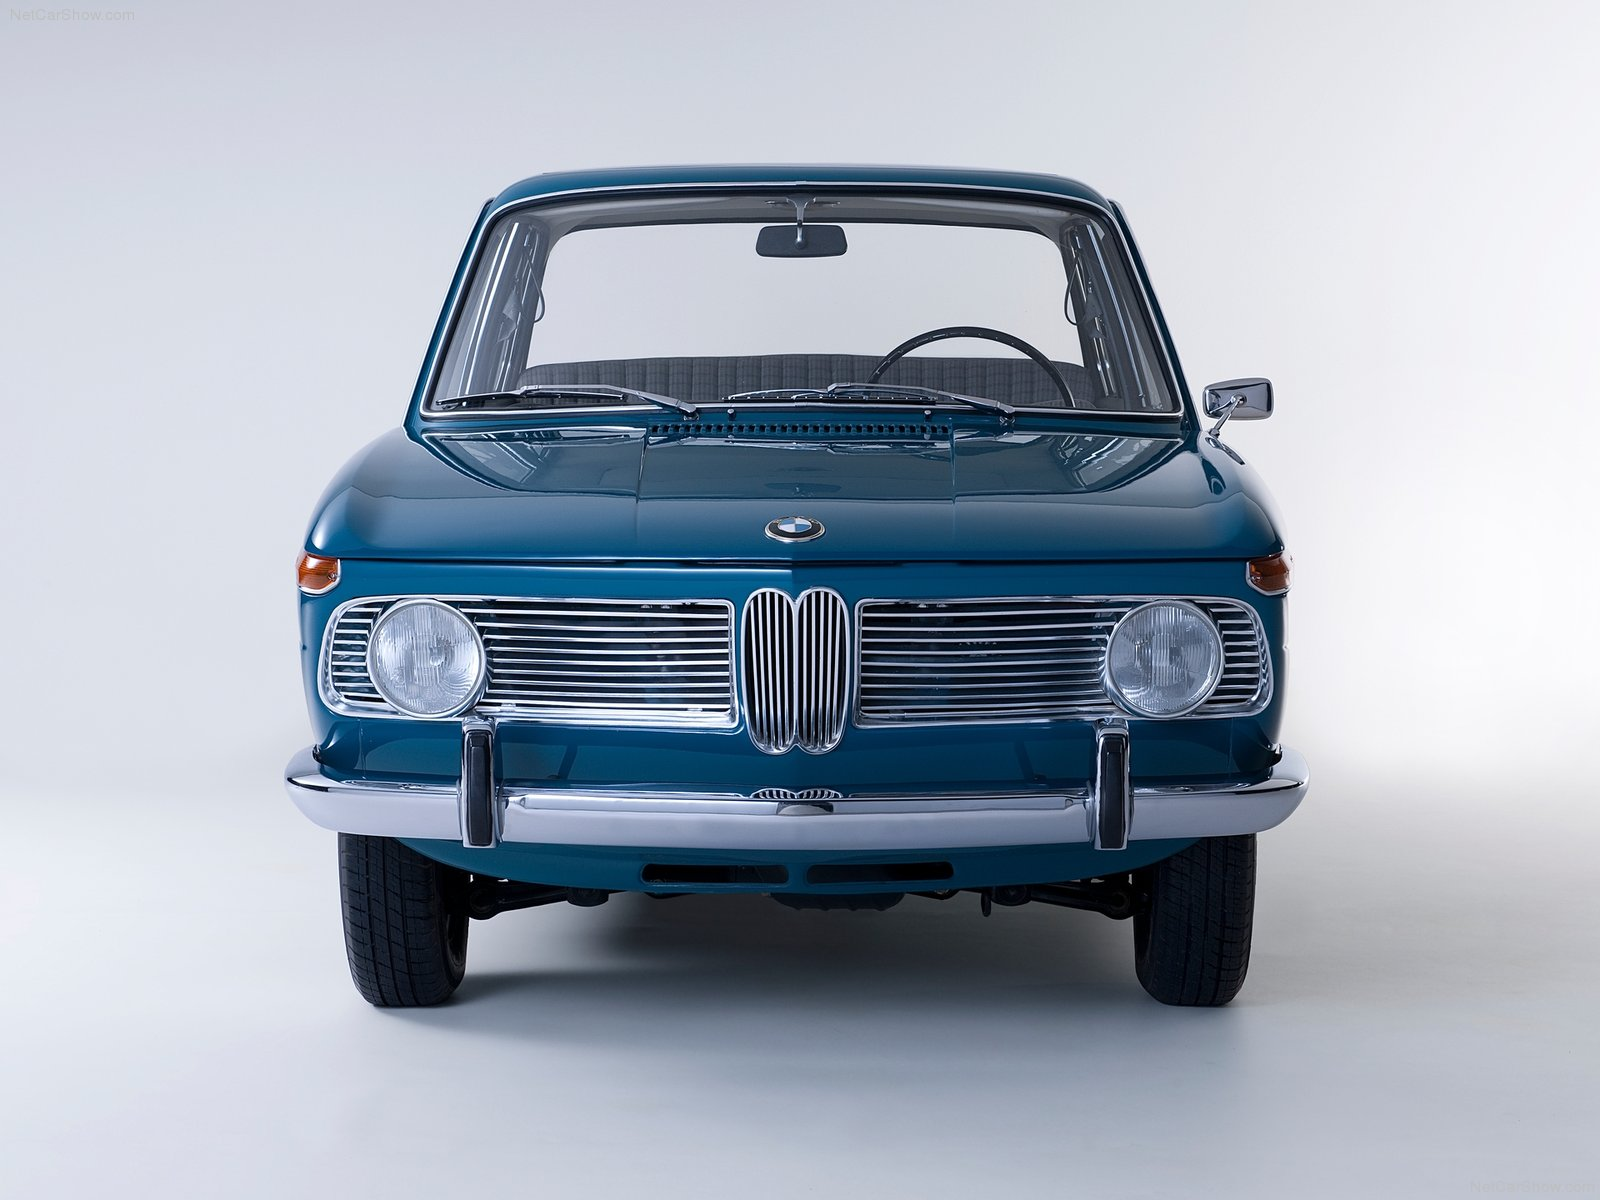 You can vote for this BMW 1500 photo